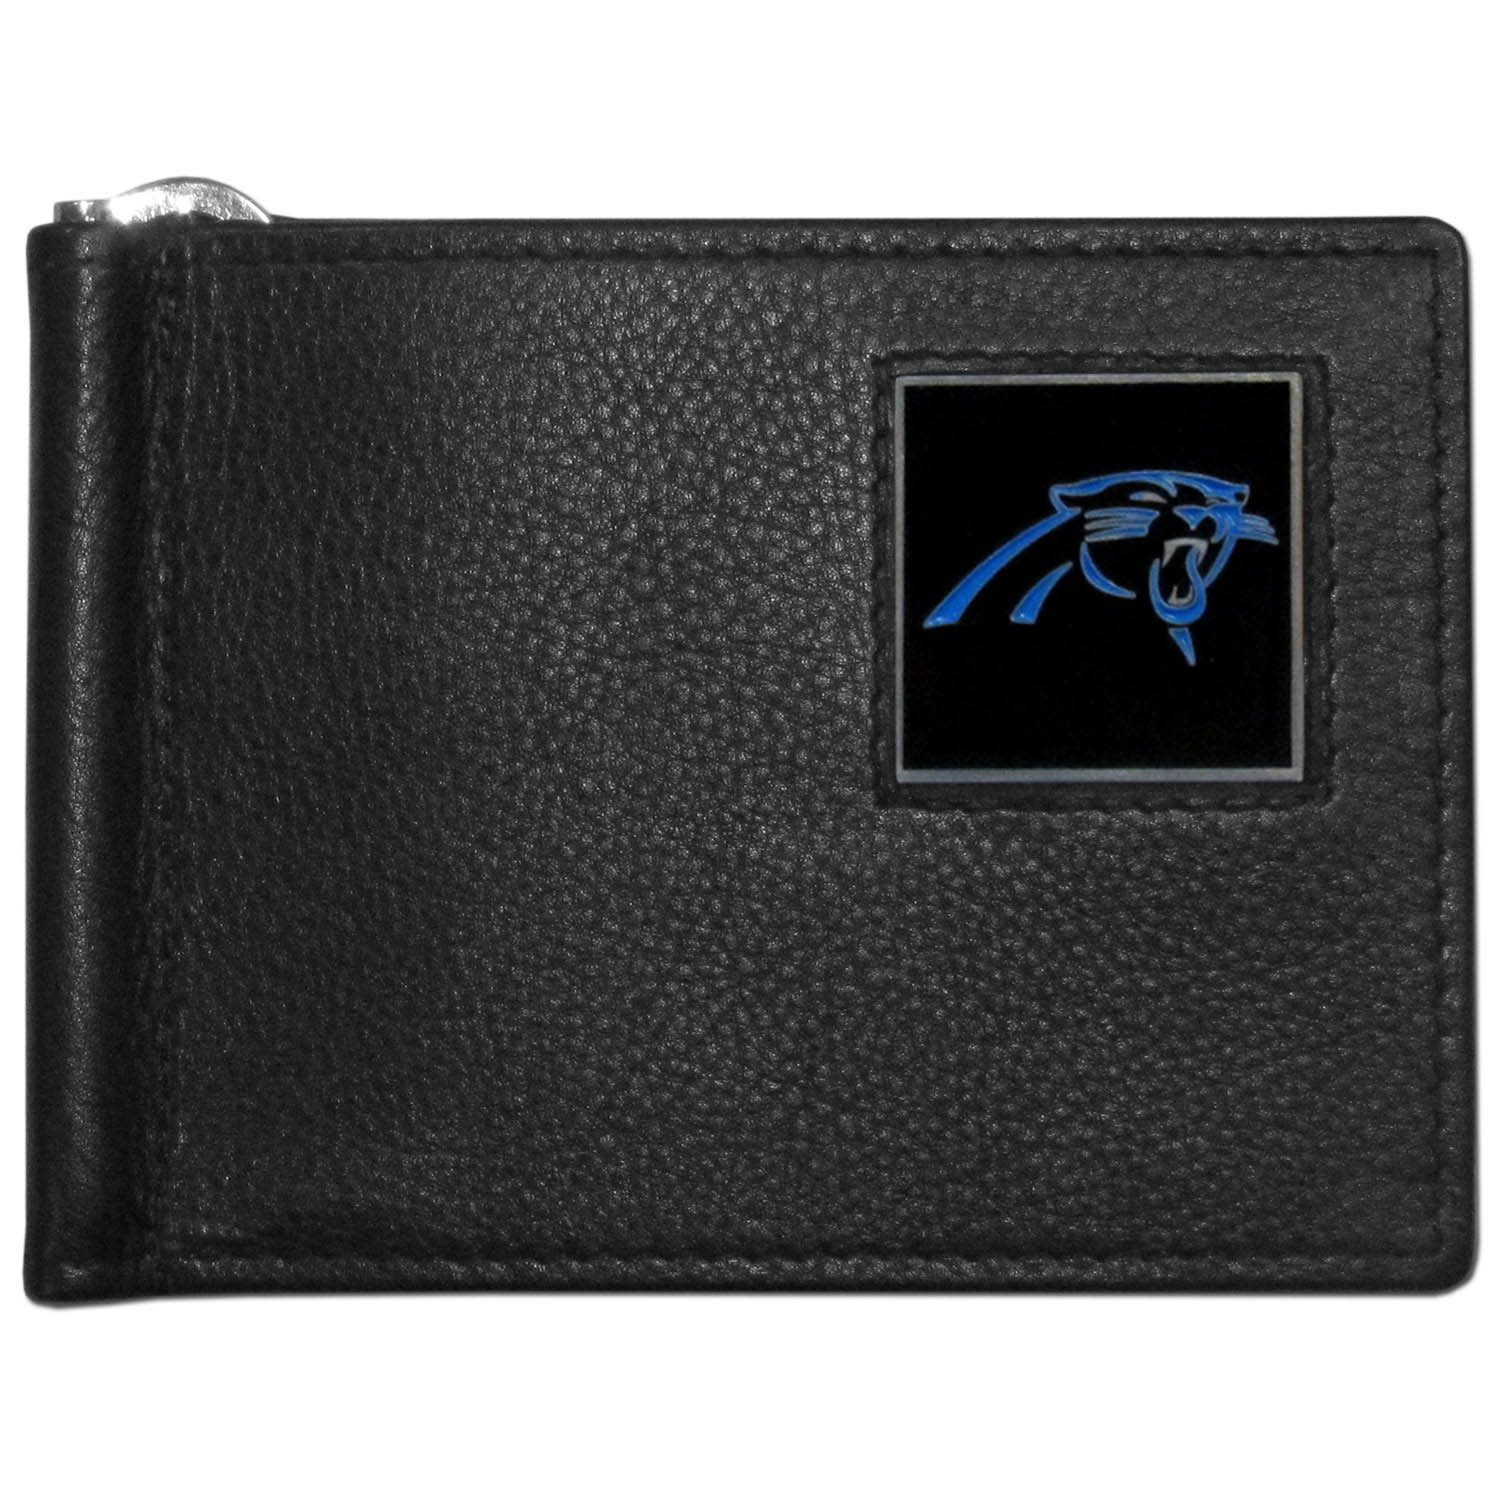 Carolina Panthers Leather Bill Clip Wallet - This cool new style wallet features an inner, metal bill clip that lips up for easy access. The super slim wallet holds tons of stuff with ample pockets, credit card slots & windowed ID slot.  The wallet is made of genuine fine grain leather and it finished with a metal Carolina Panthers emblem. The wallet is shipped in gift box packaging.